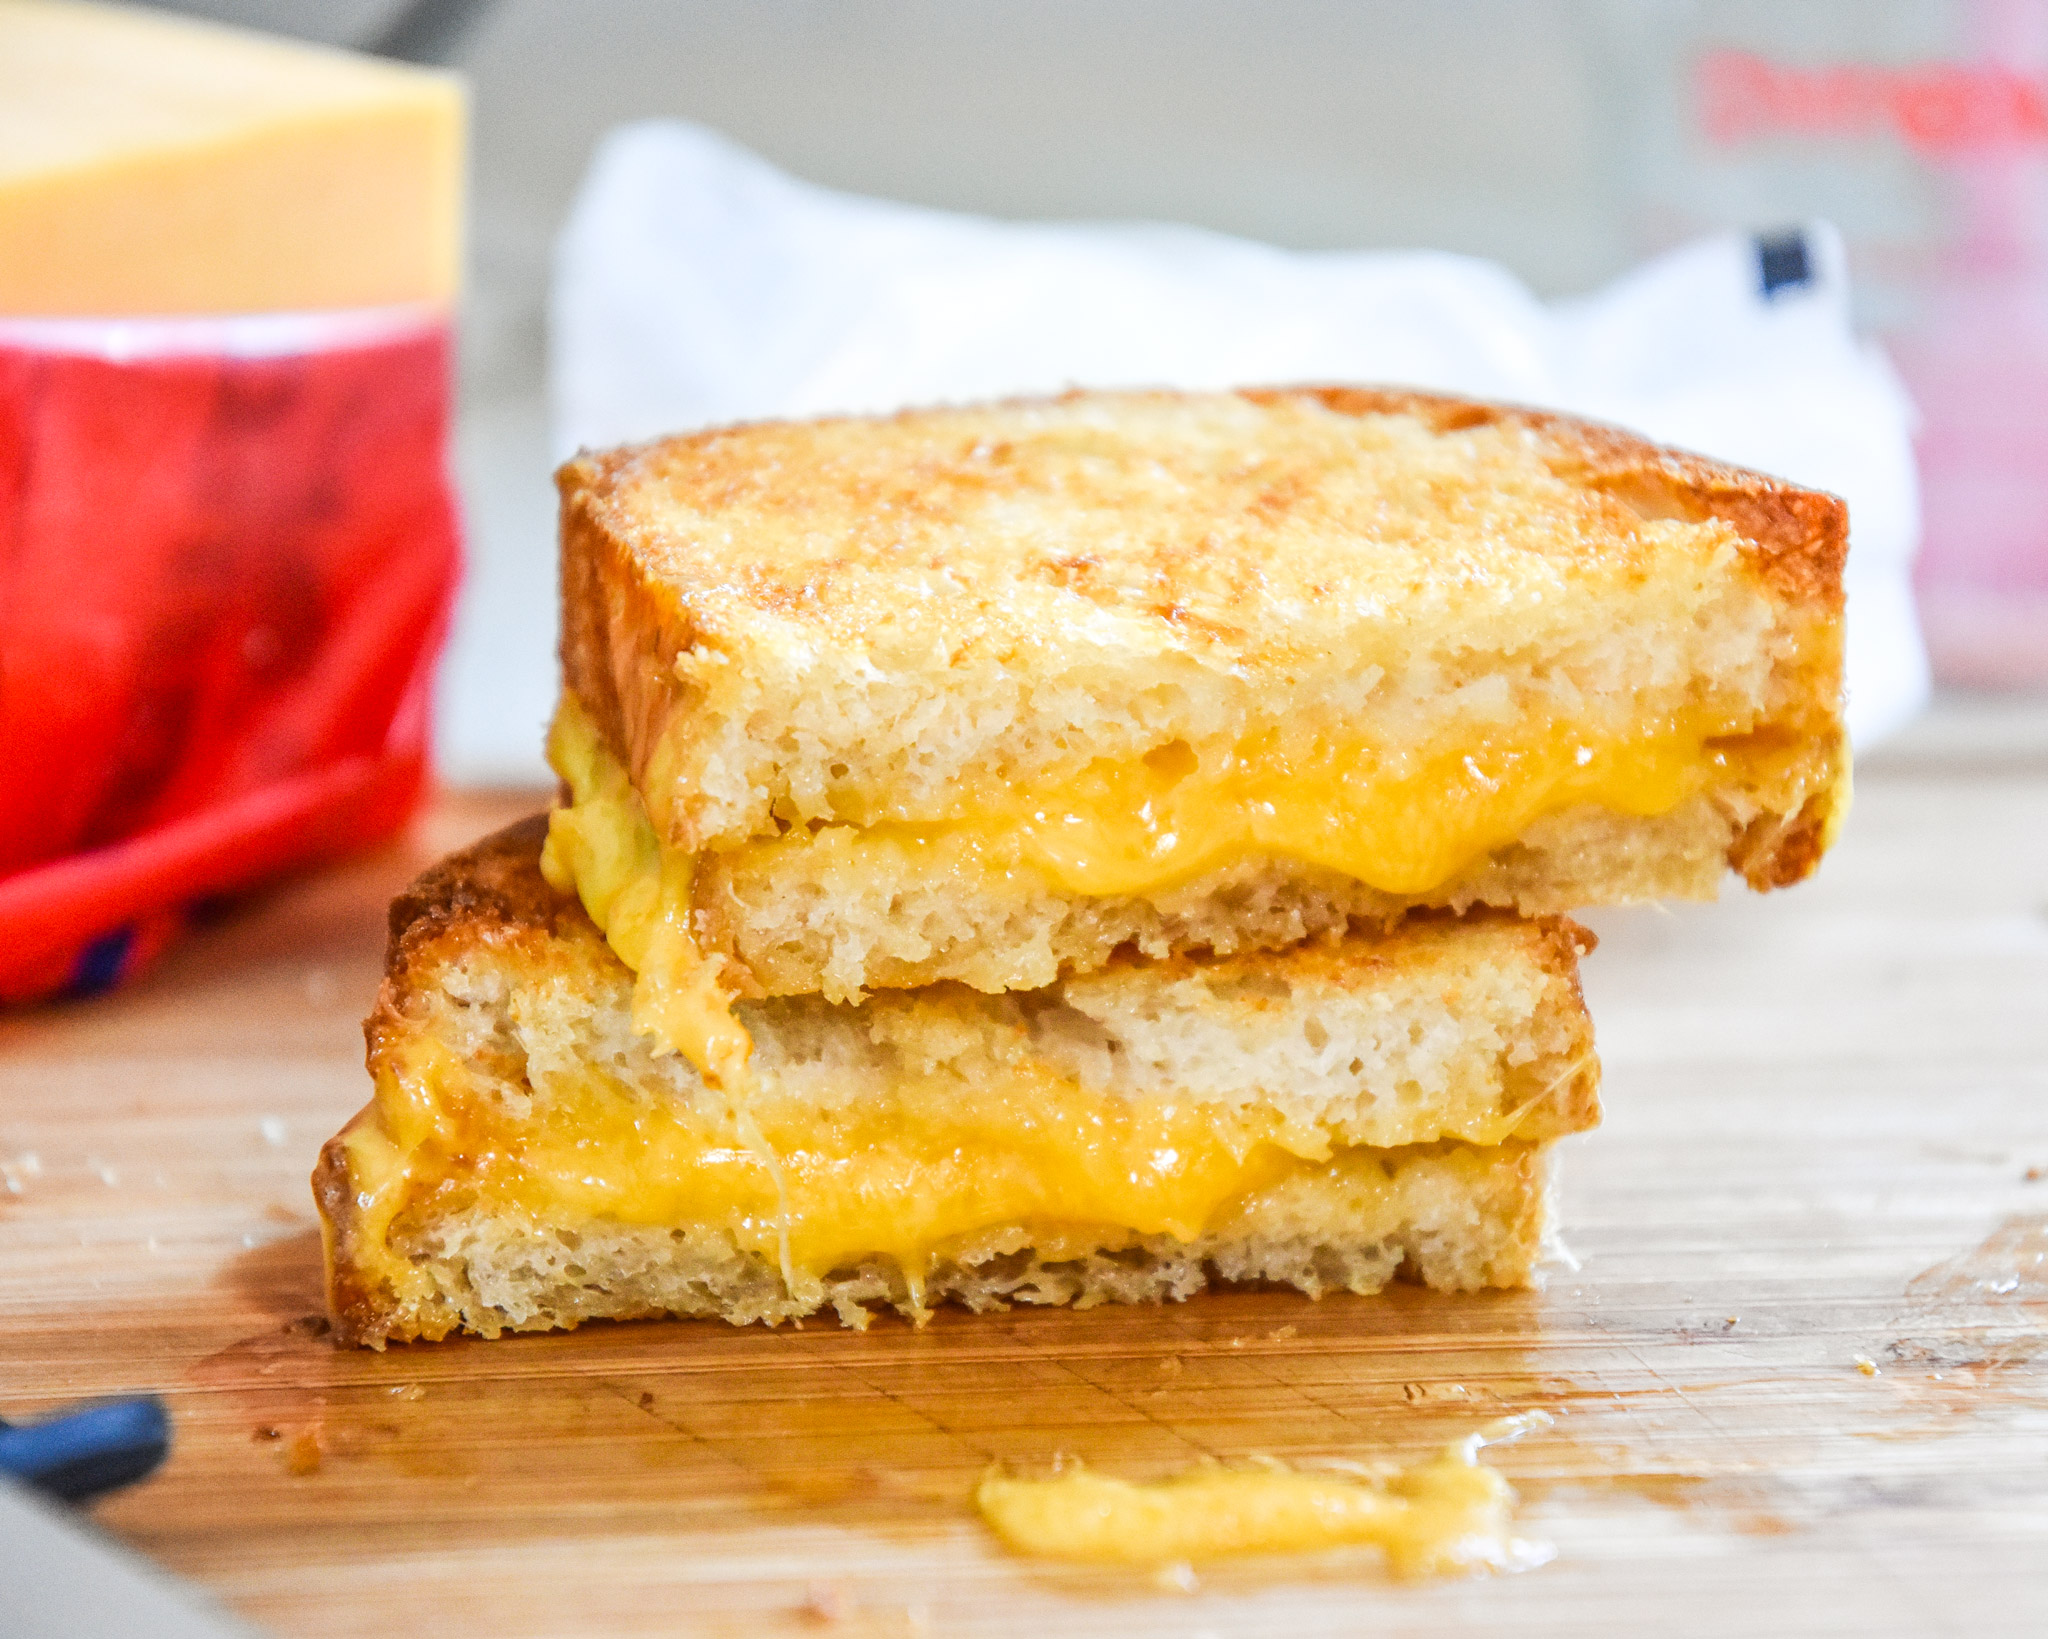 an air fryer grilled cheese sandwich cut in half